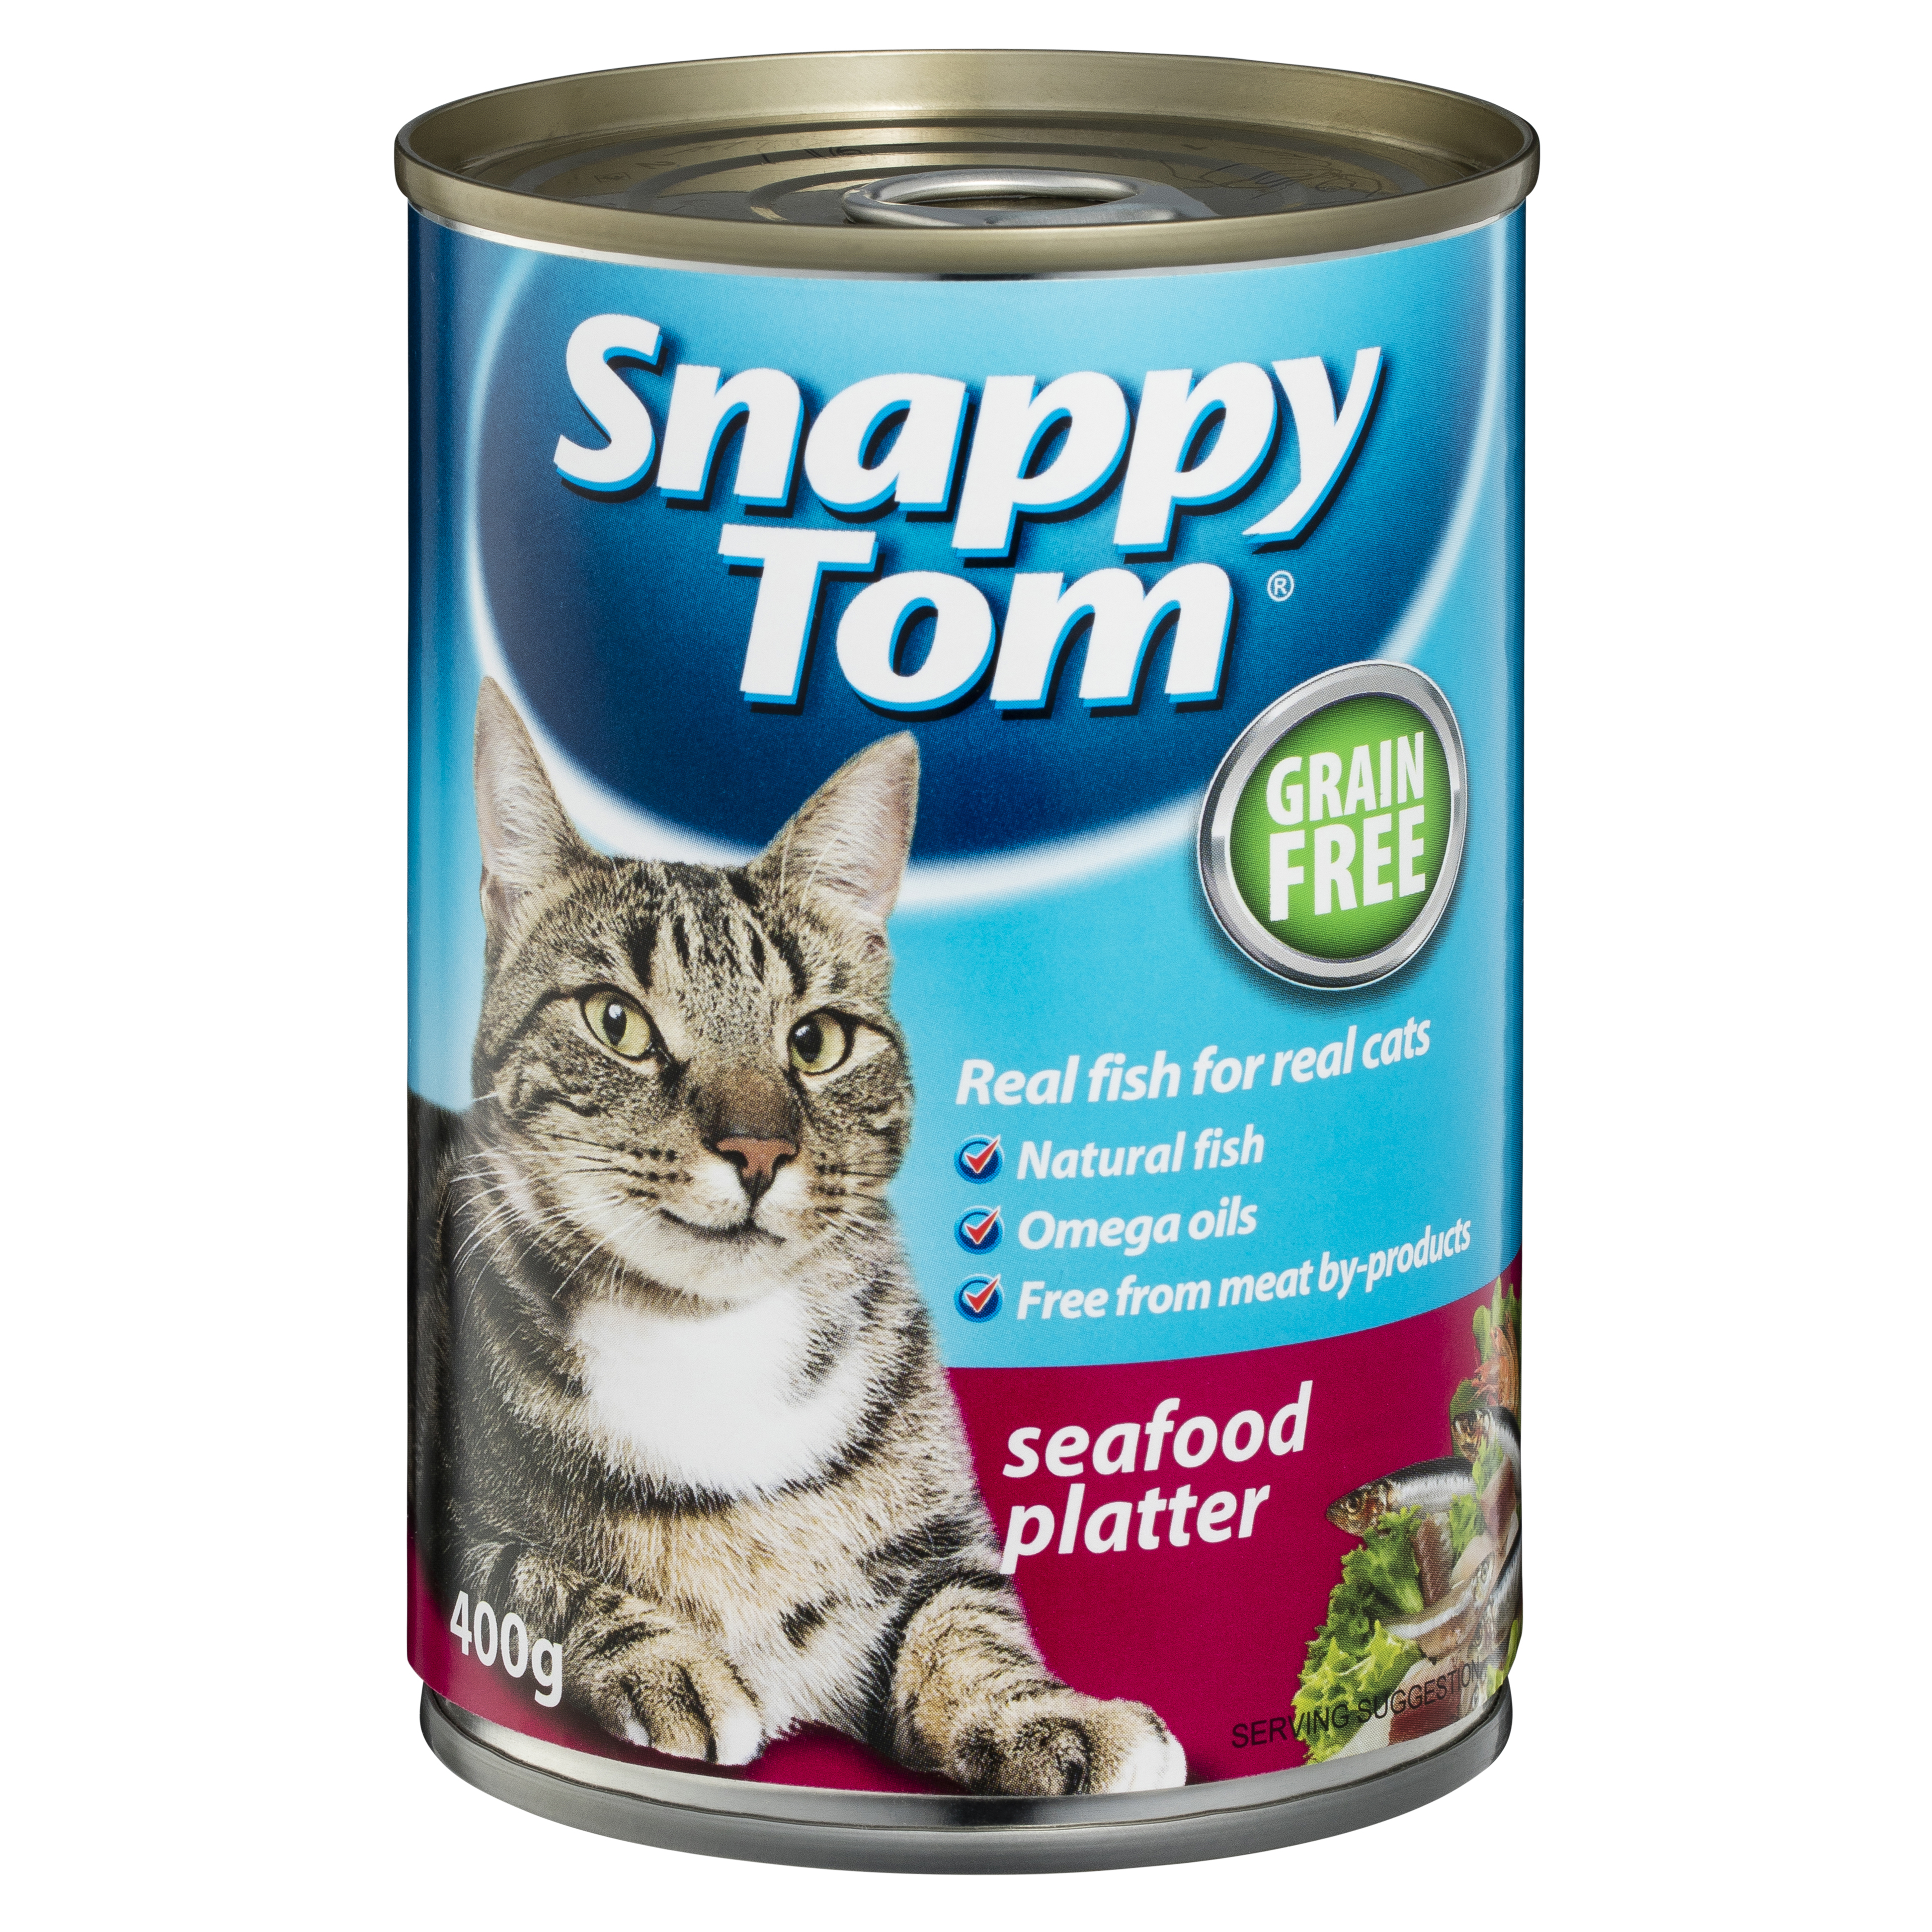 snappy-tom-seafood-platter-400g-0